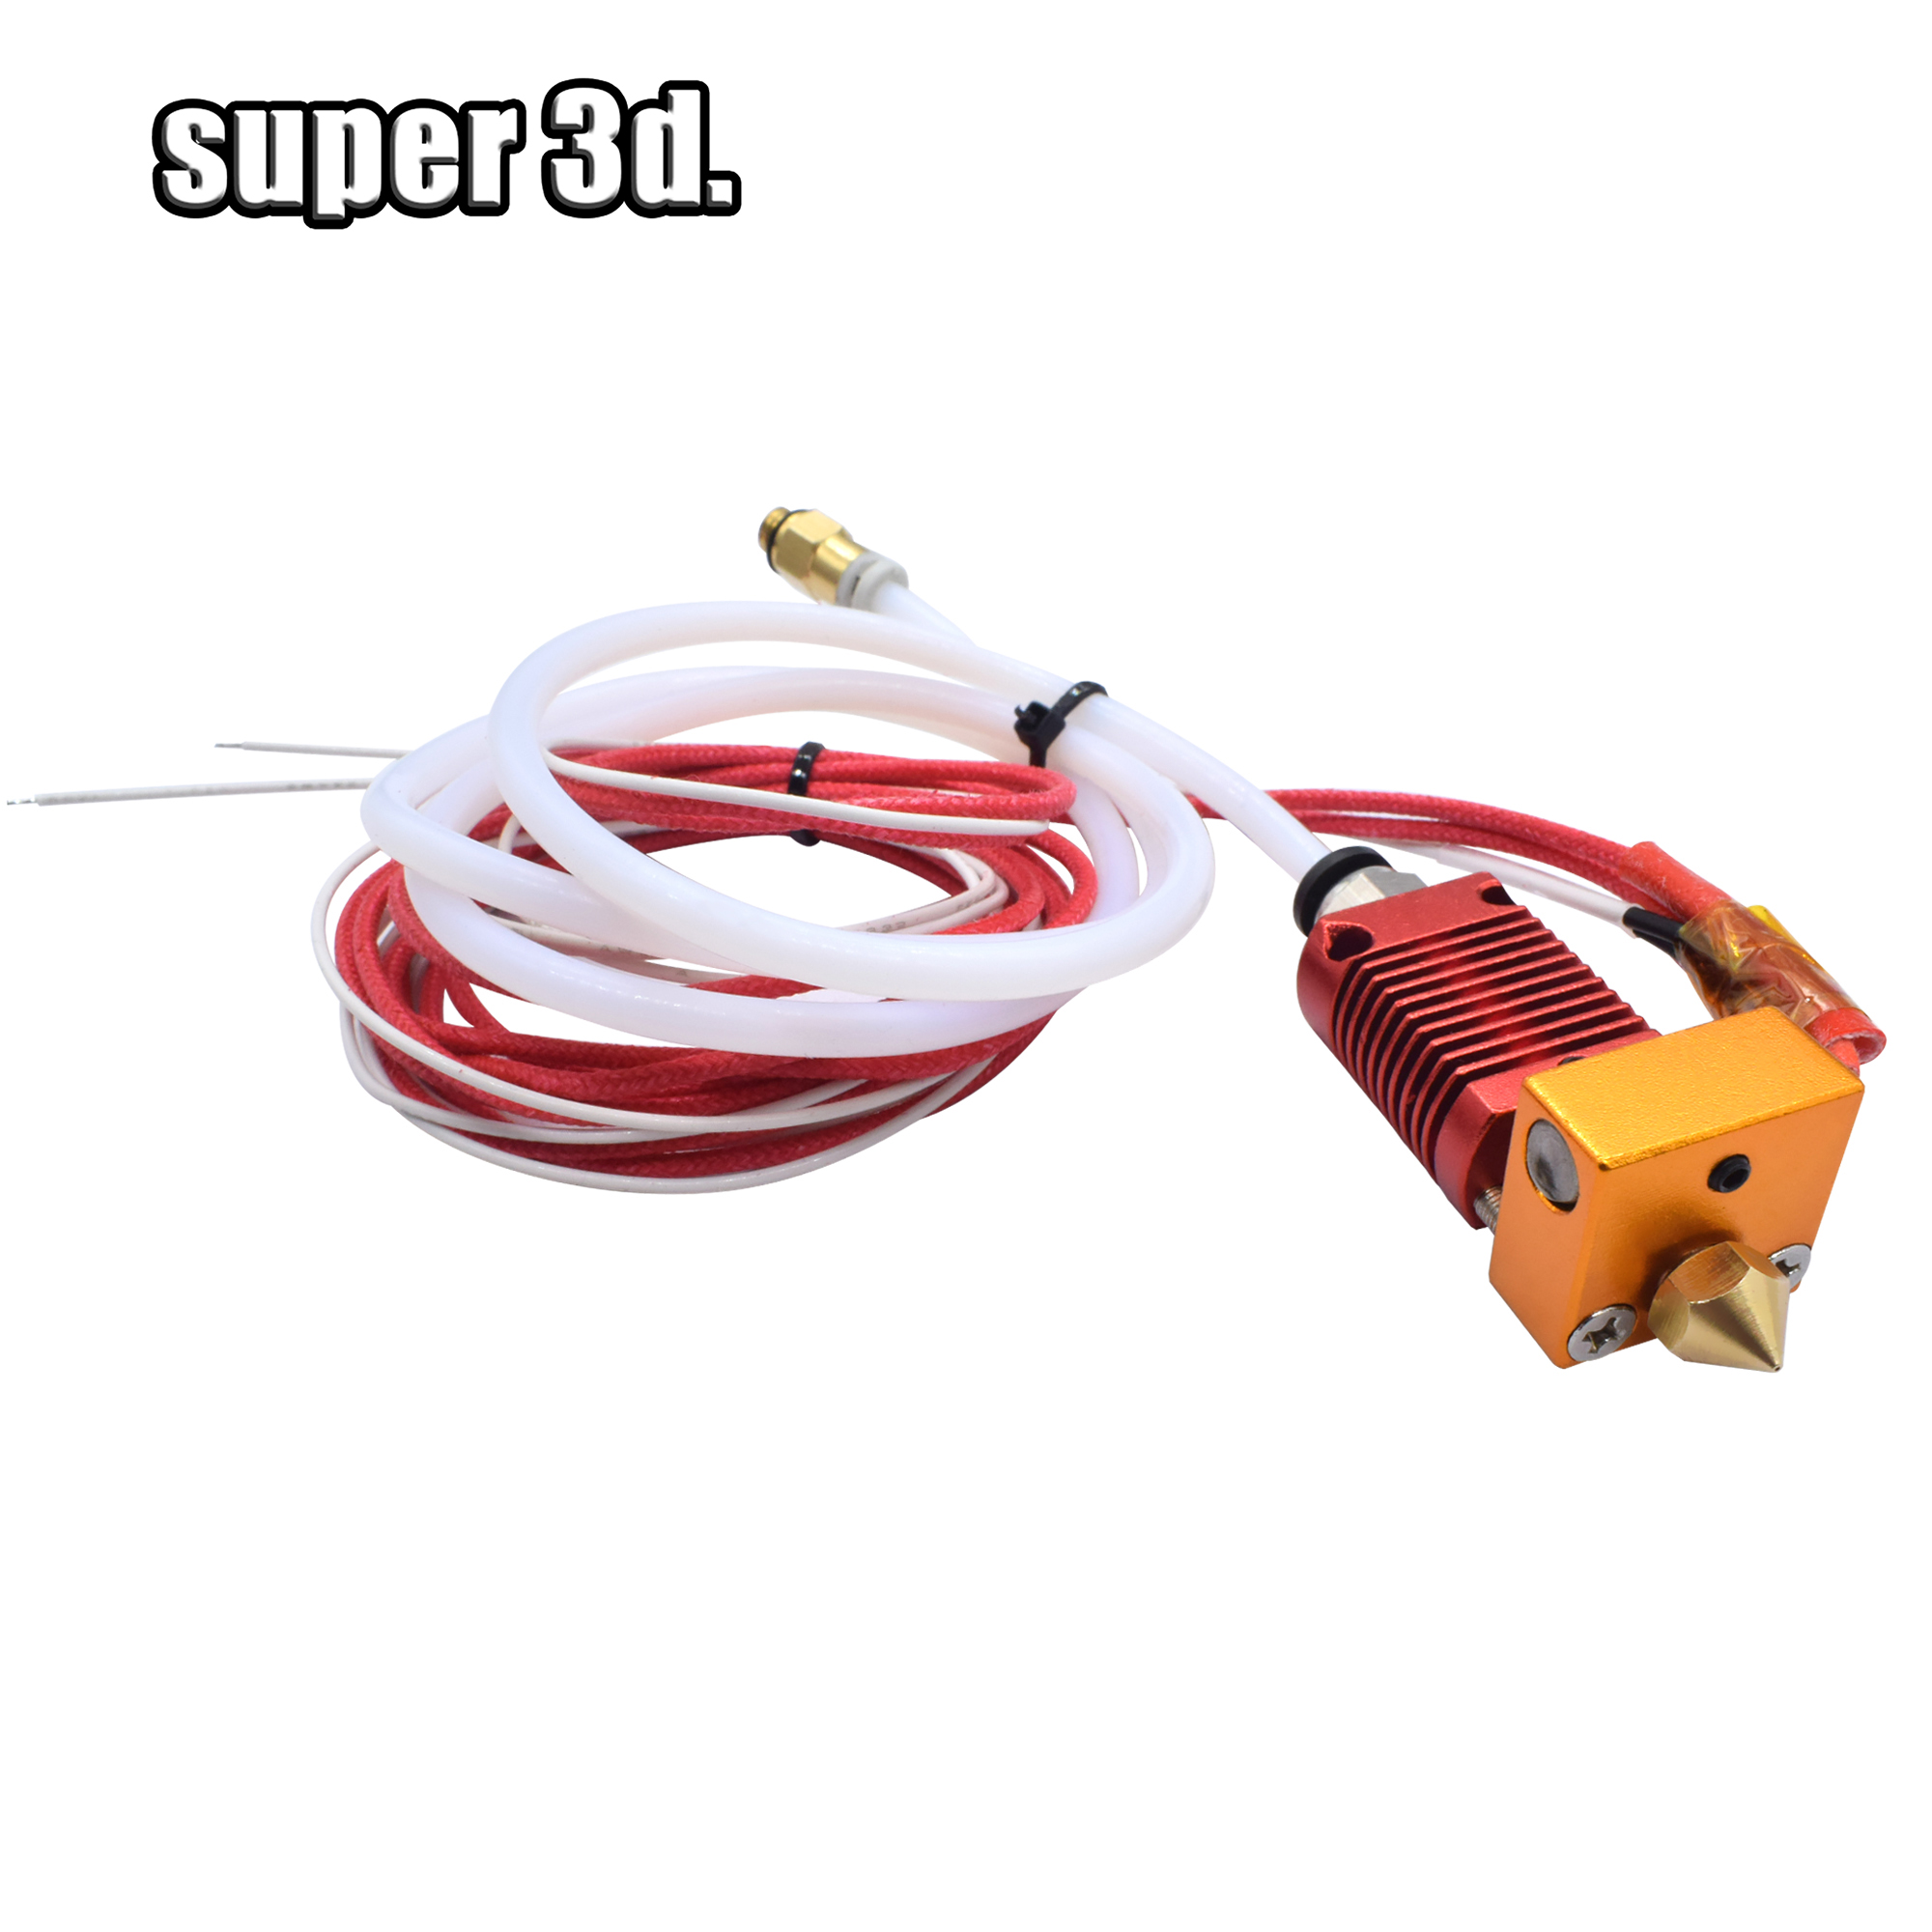 3D Full Metal J-head CR10 Hotend Extruder Hot End Kit for Creality Ender-3/5 Pro CR10/10s Bowden Extruder 2